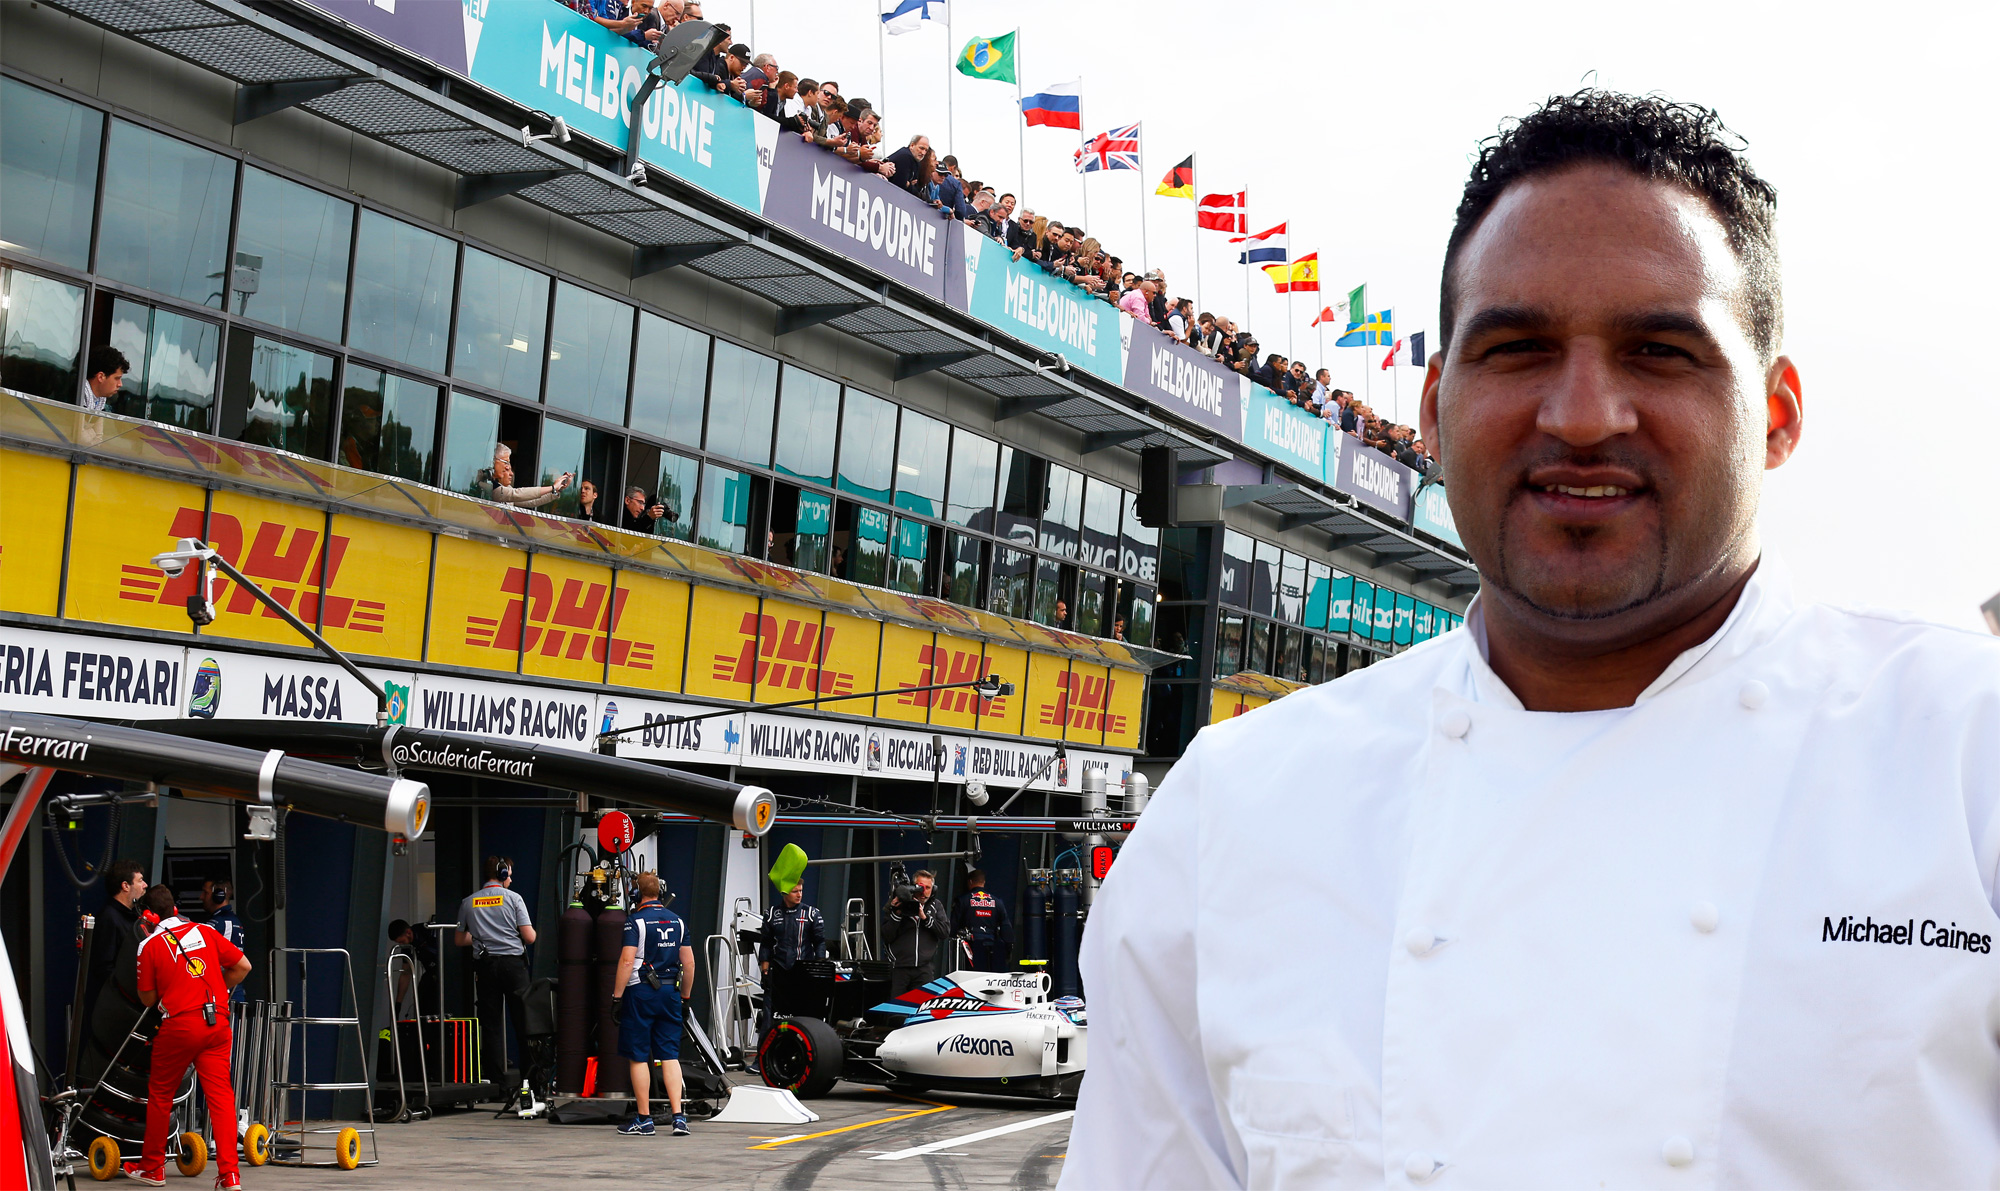 Michelin-starred chef, Michael Caines MBE